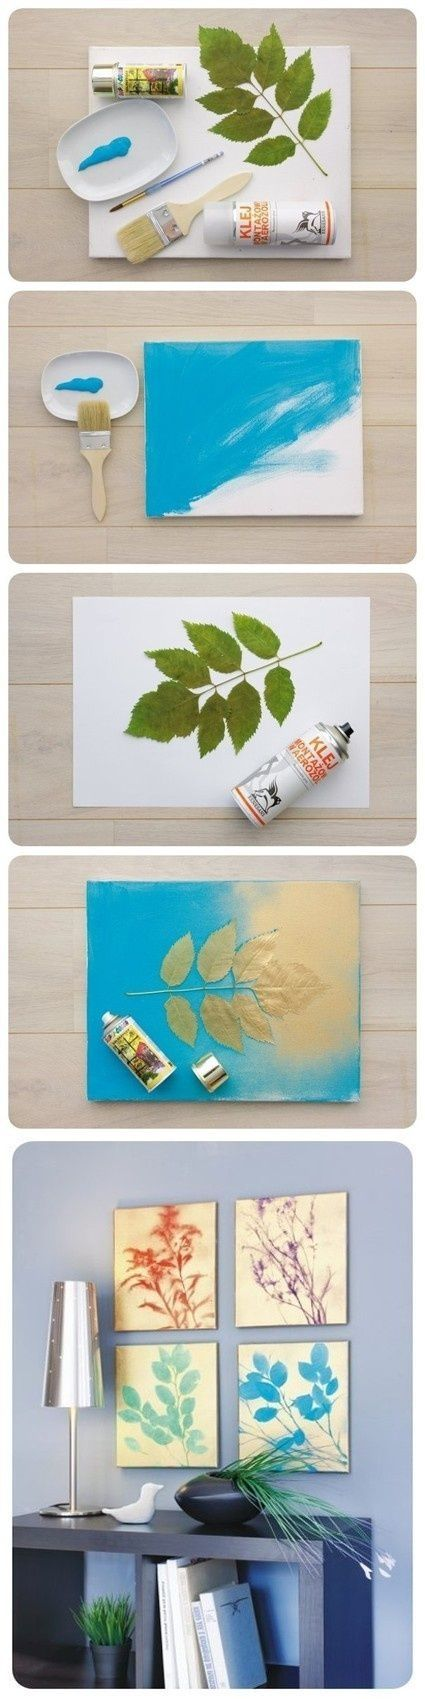 I kind of like this idea and it would be easy to do while it's summer and everything has leaves and we could do it outside. and I know where we can get some pretty cheap canvases by MartaFurtado